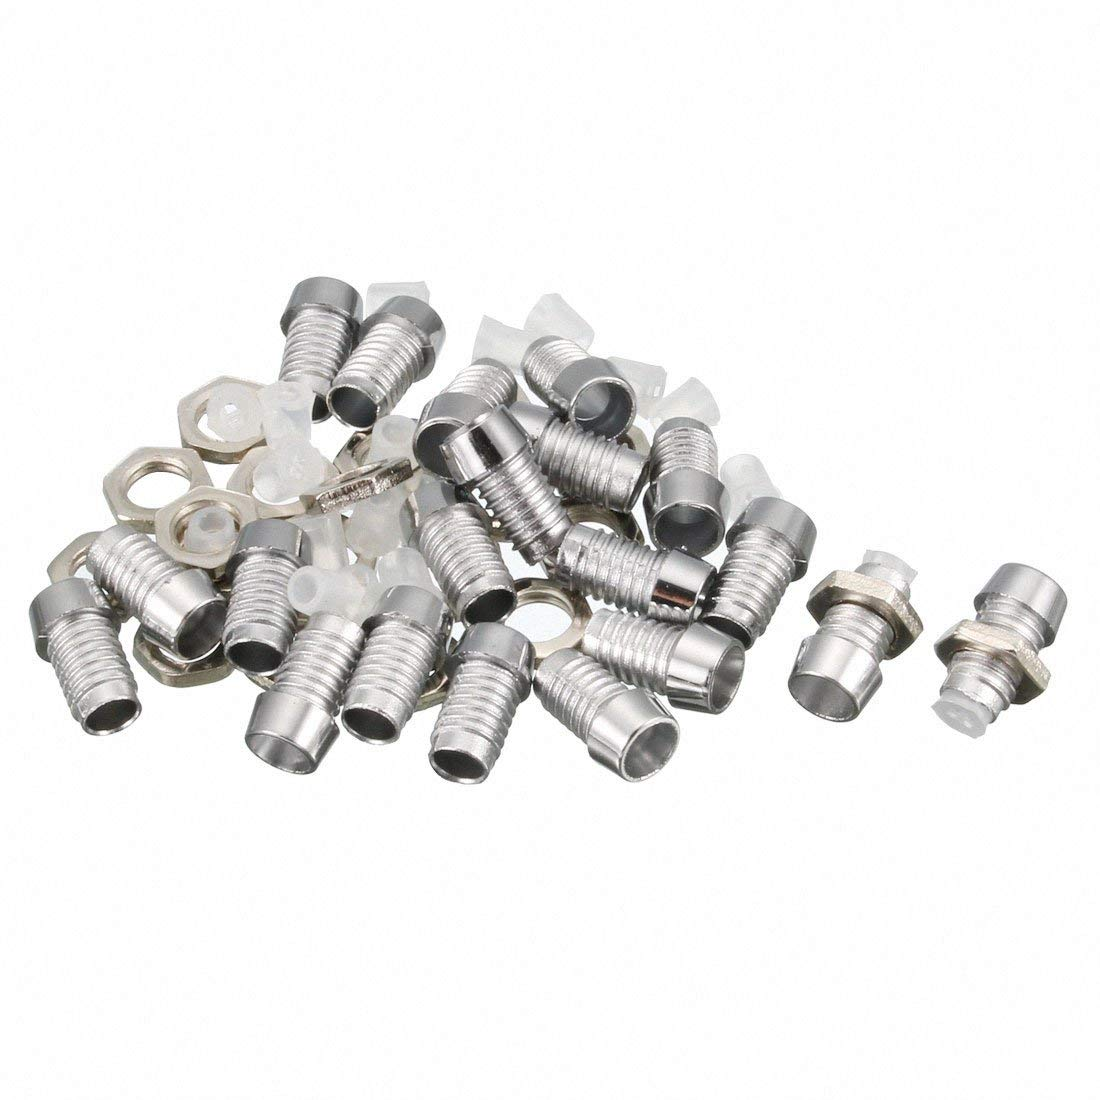 uxcell 20pcs 3mm LED Lamp Holder Light Bulb Socket Plastic Plating Chrome Plated for Light-Emitting Diode Lighting